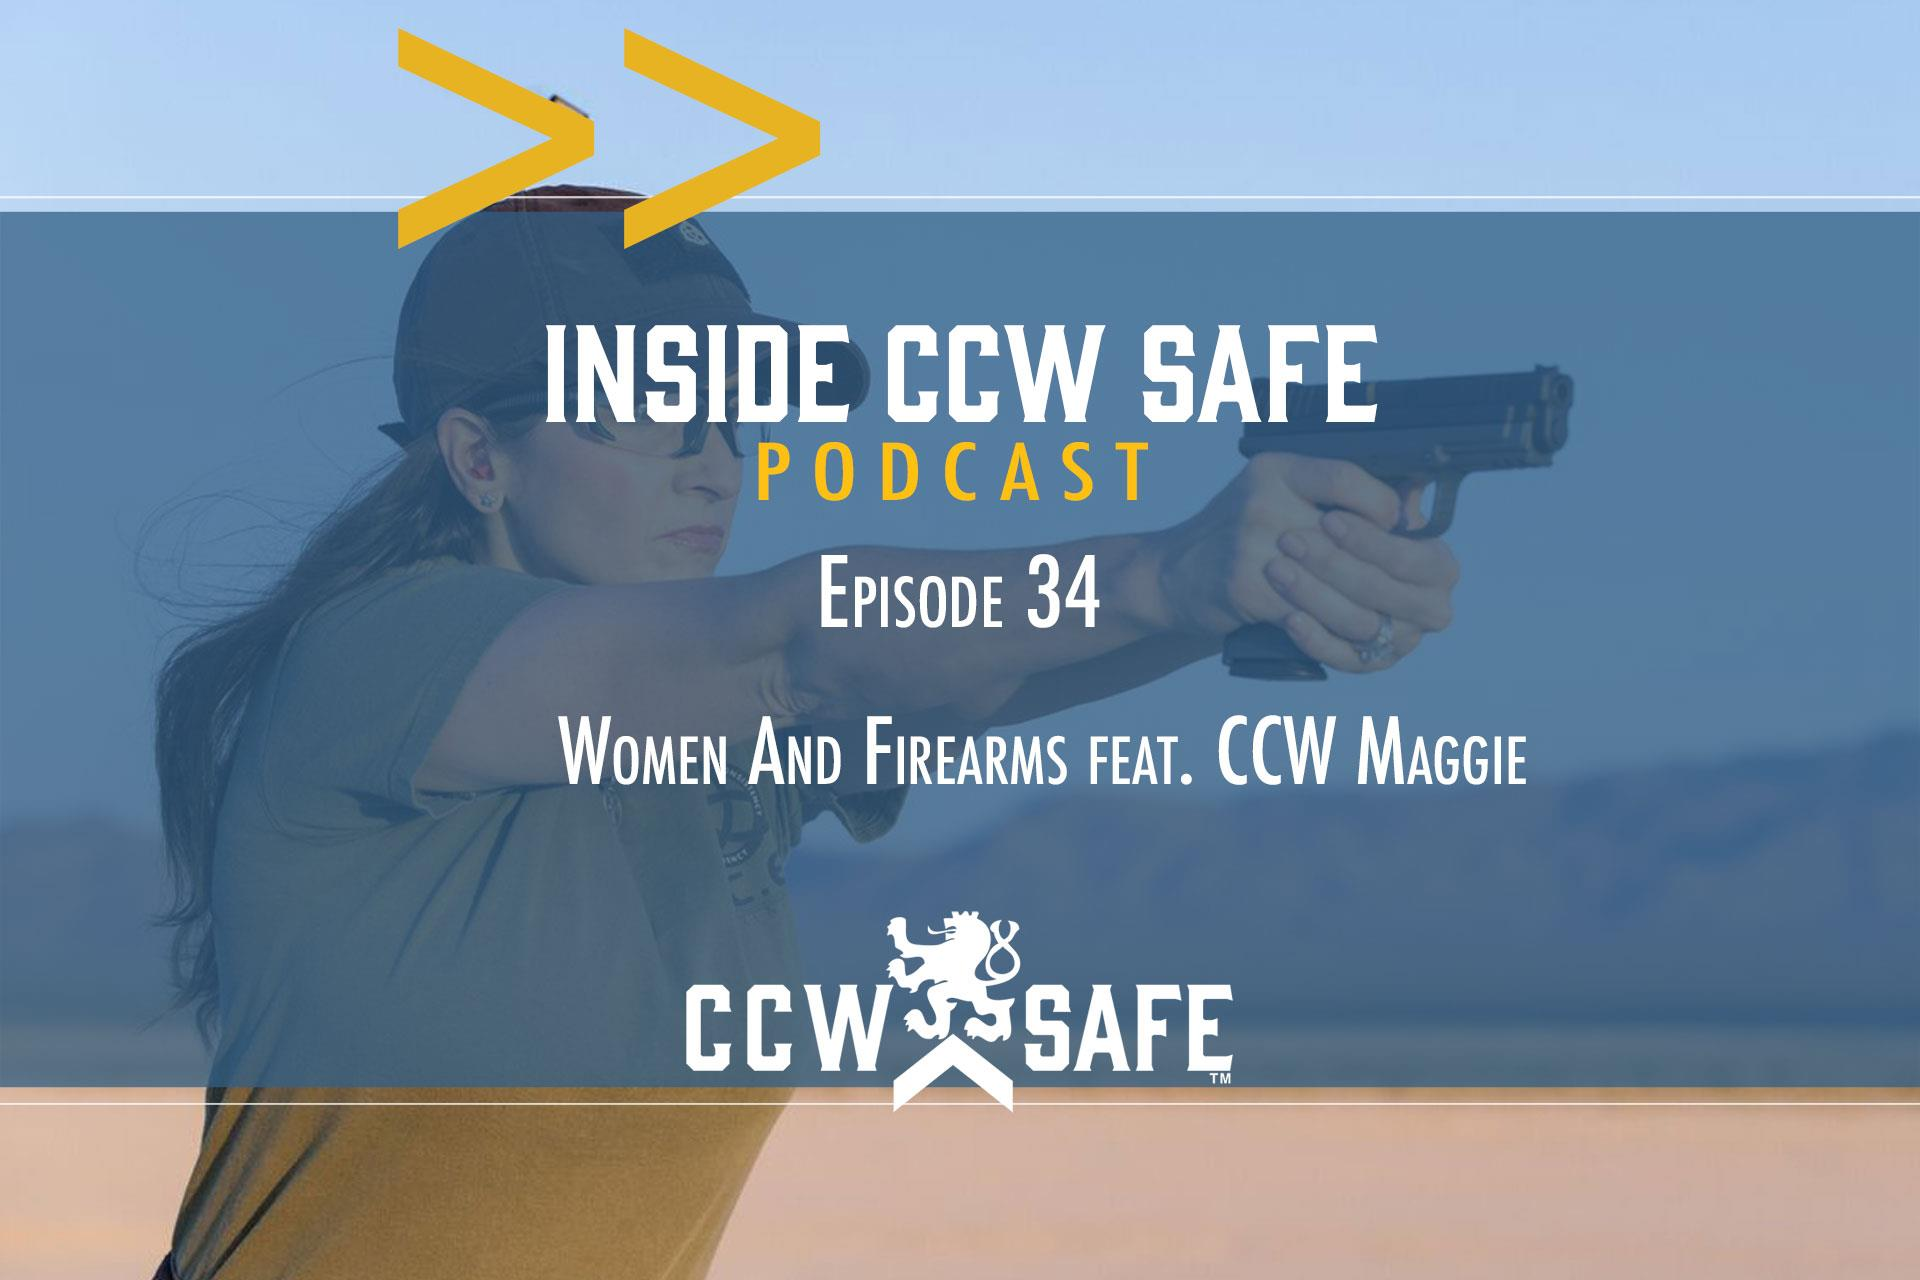 Inside CCW Safe Podcast-Episode 34: Women and Firearms feat. CCW Maggie